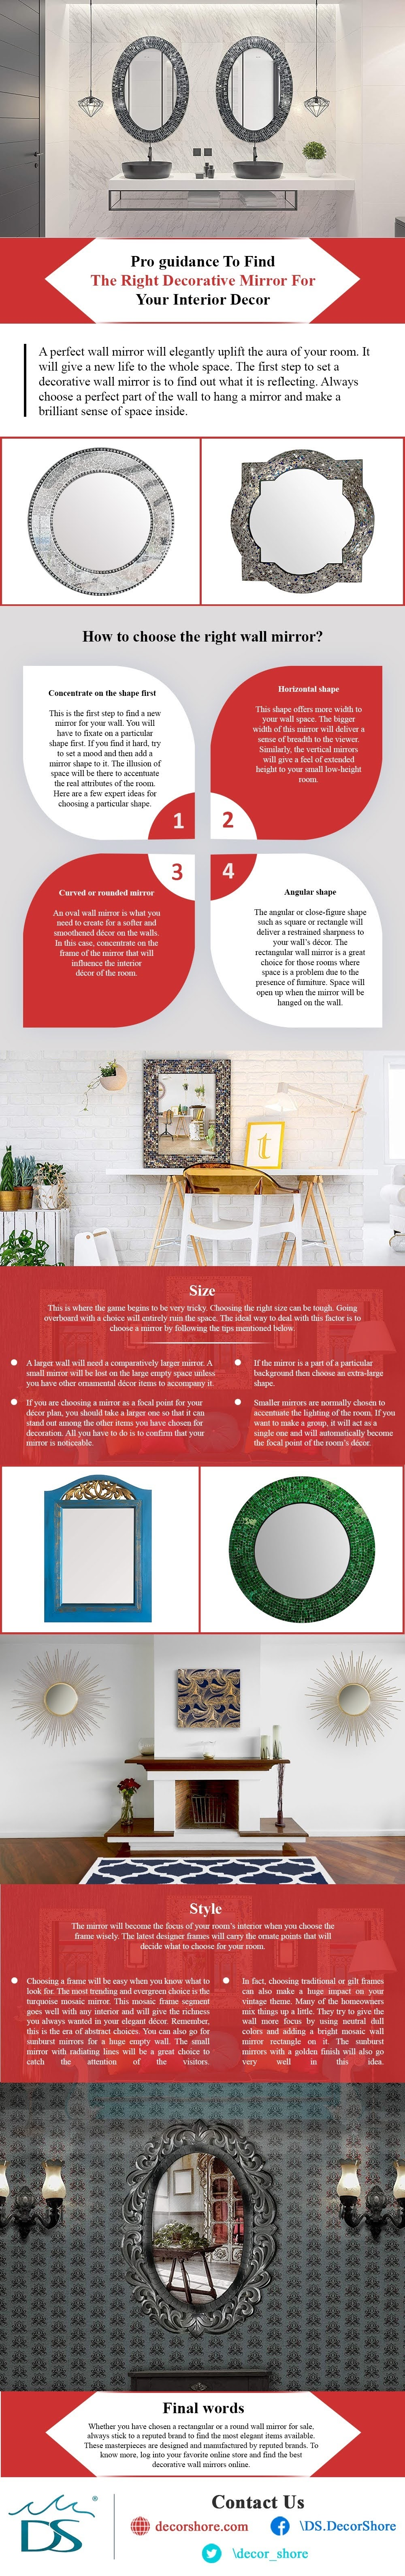 Pro Guidance To Find The Right Decorative Mirror For Your Interior Decor #infographic